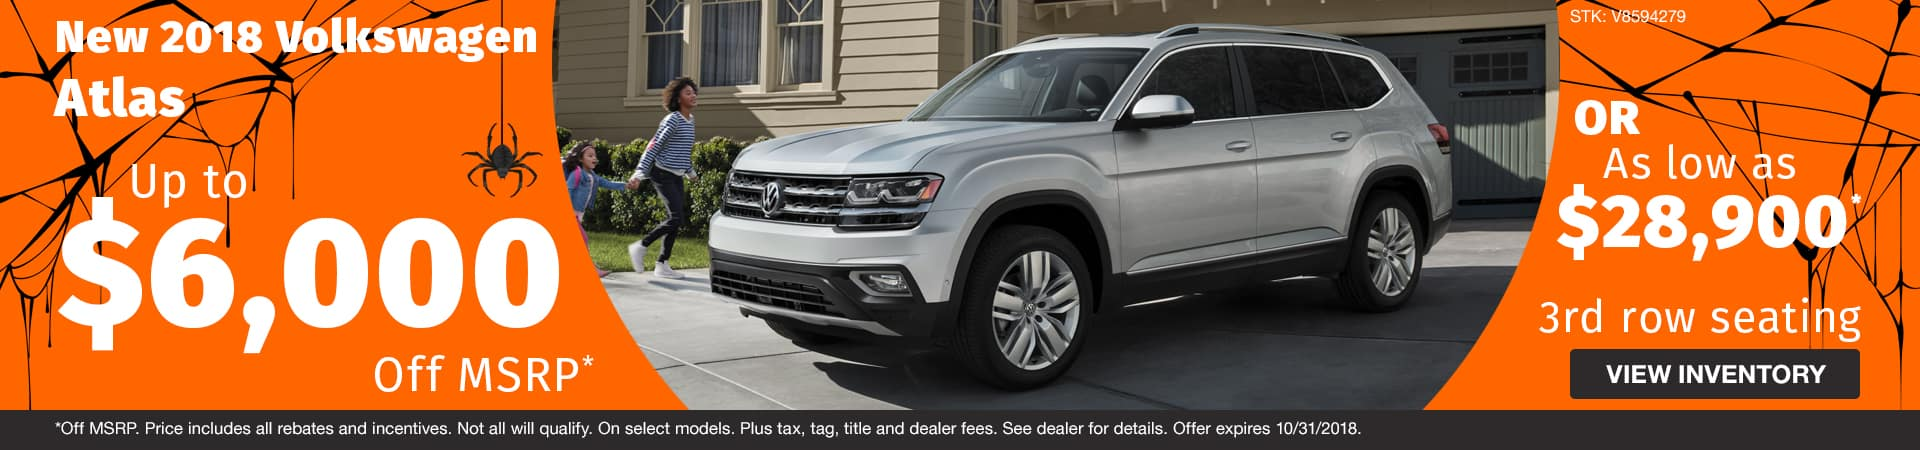 Save up to $6,000 off or buy for as low as $28,900 a new 2018 Volkswagen Atlas model in Murfreesboro TN